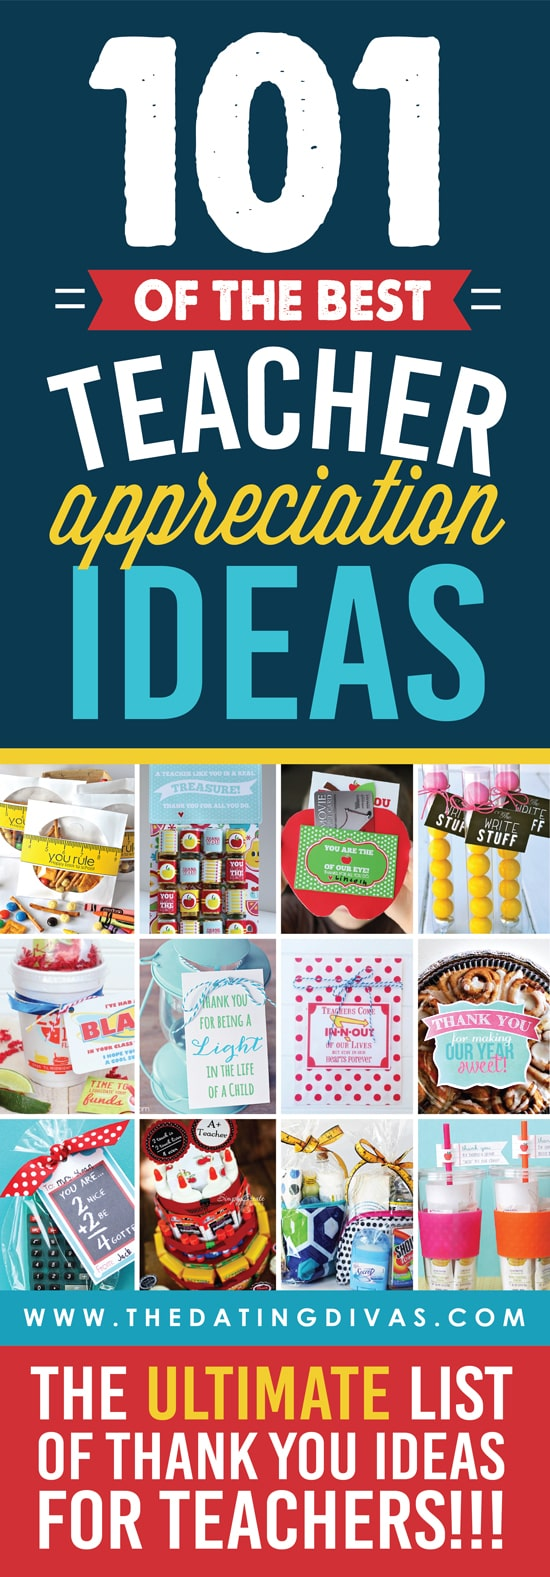 The ULTIMATE list of teacher appreciation gifts and ideas!